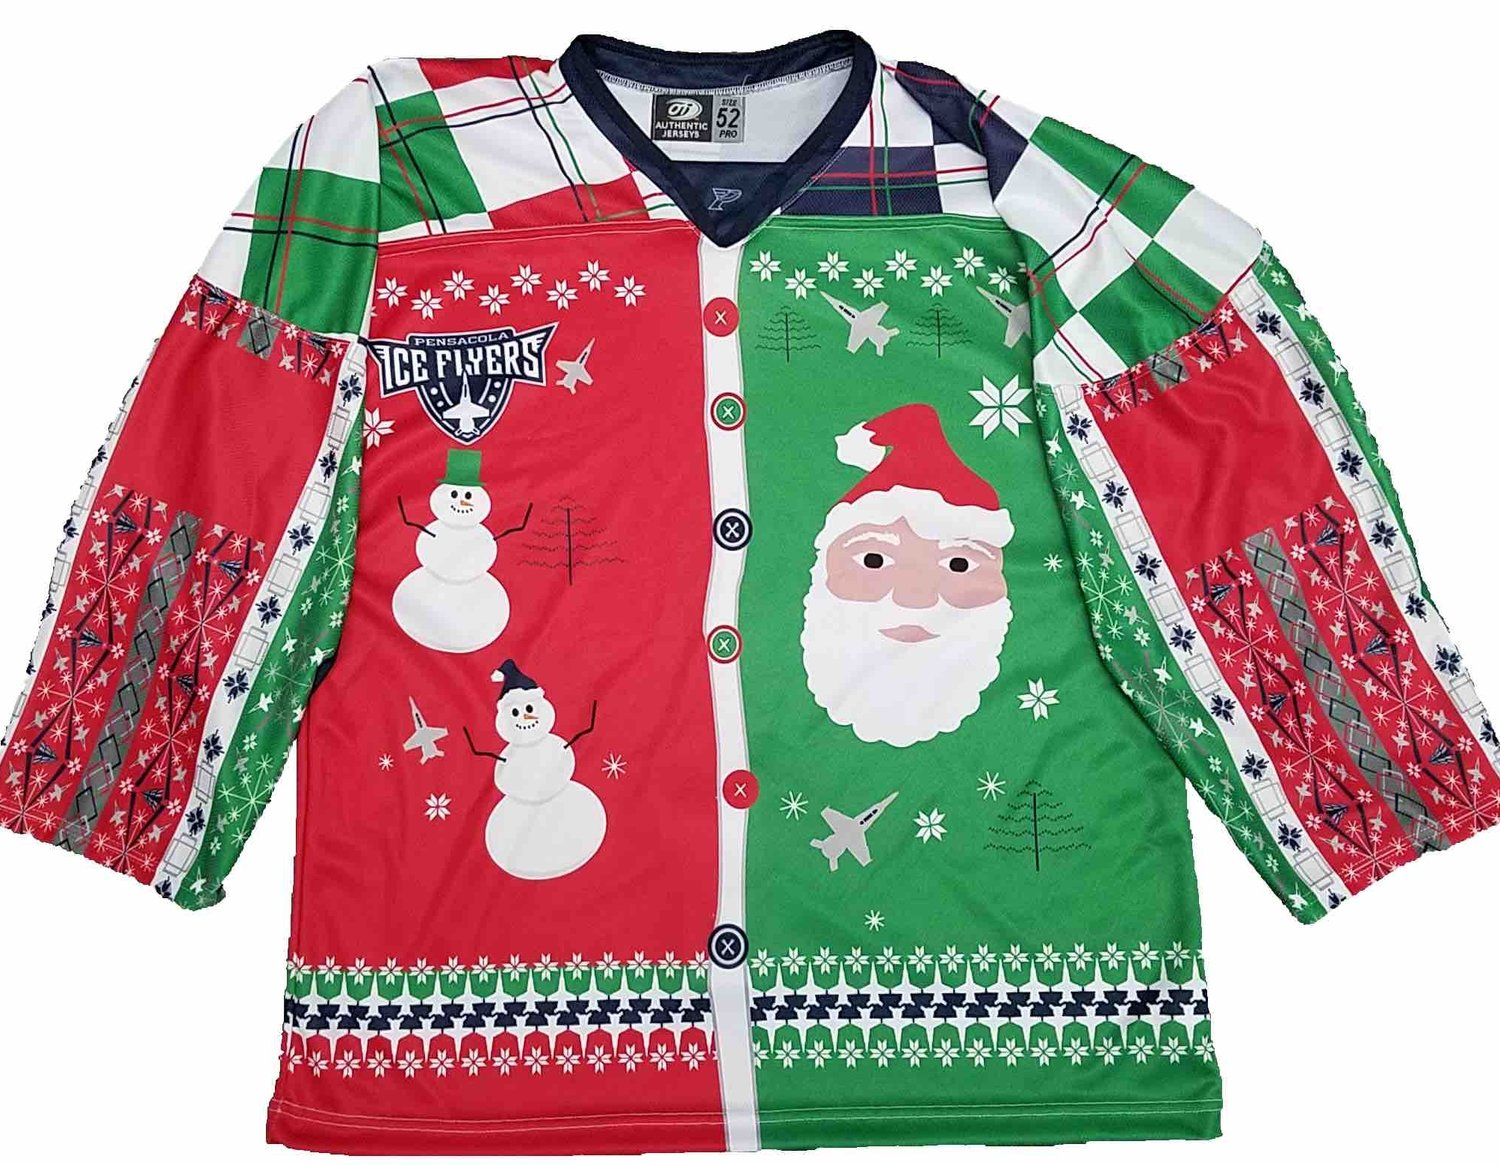 Pensacola Ice Flyers  Ugly Christmas Sweater Night — OT Sports 045b9651d